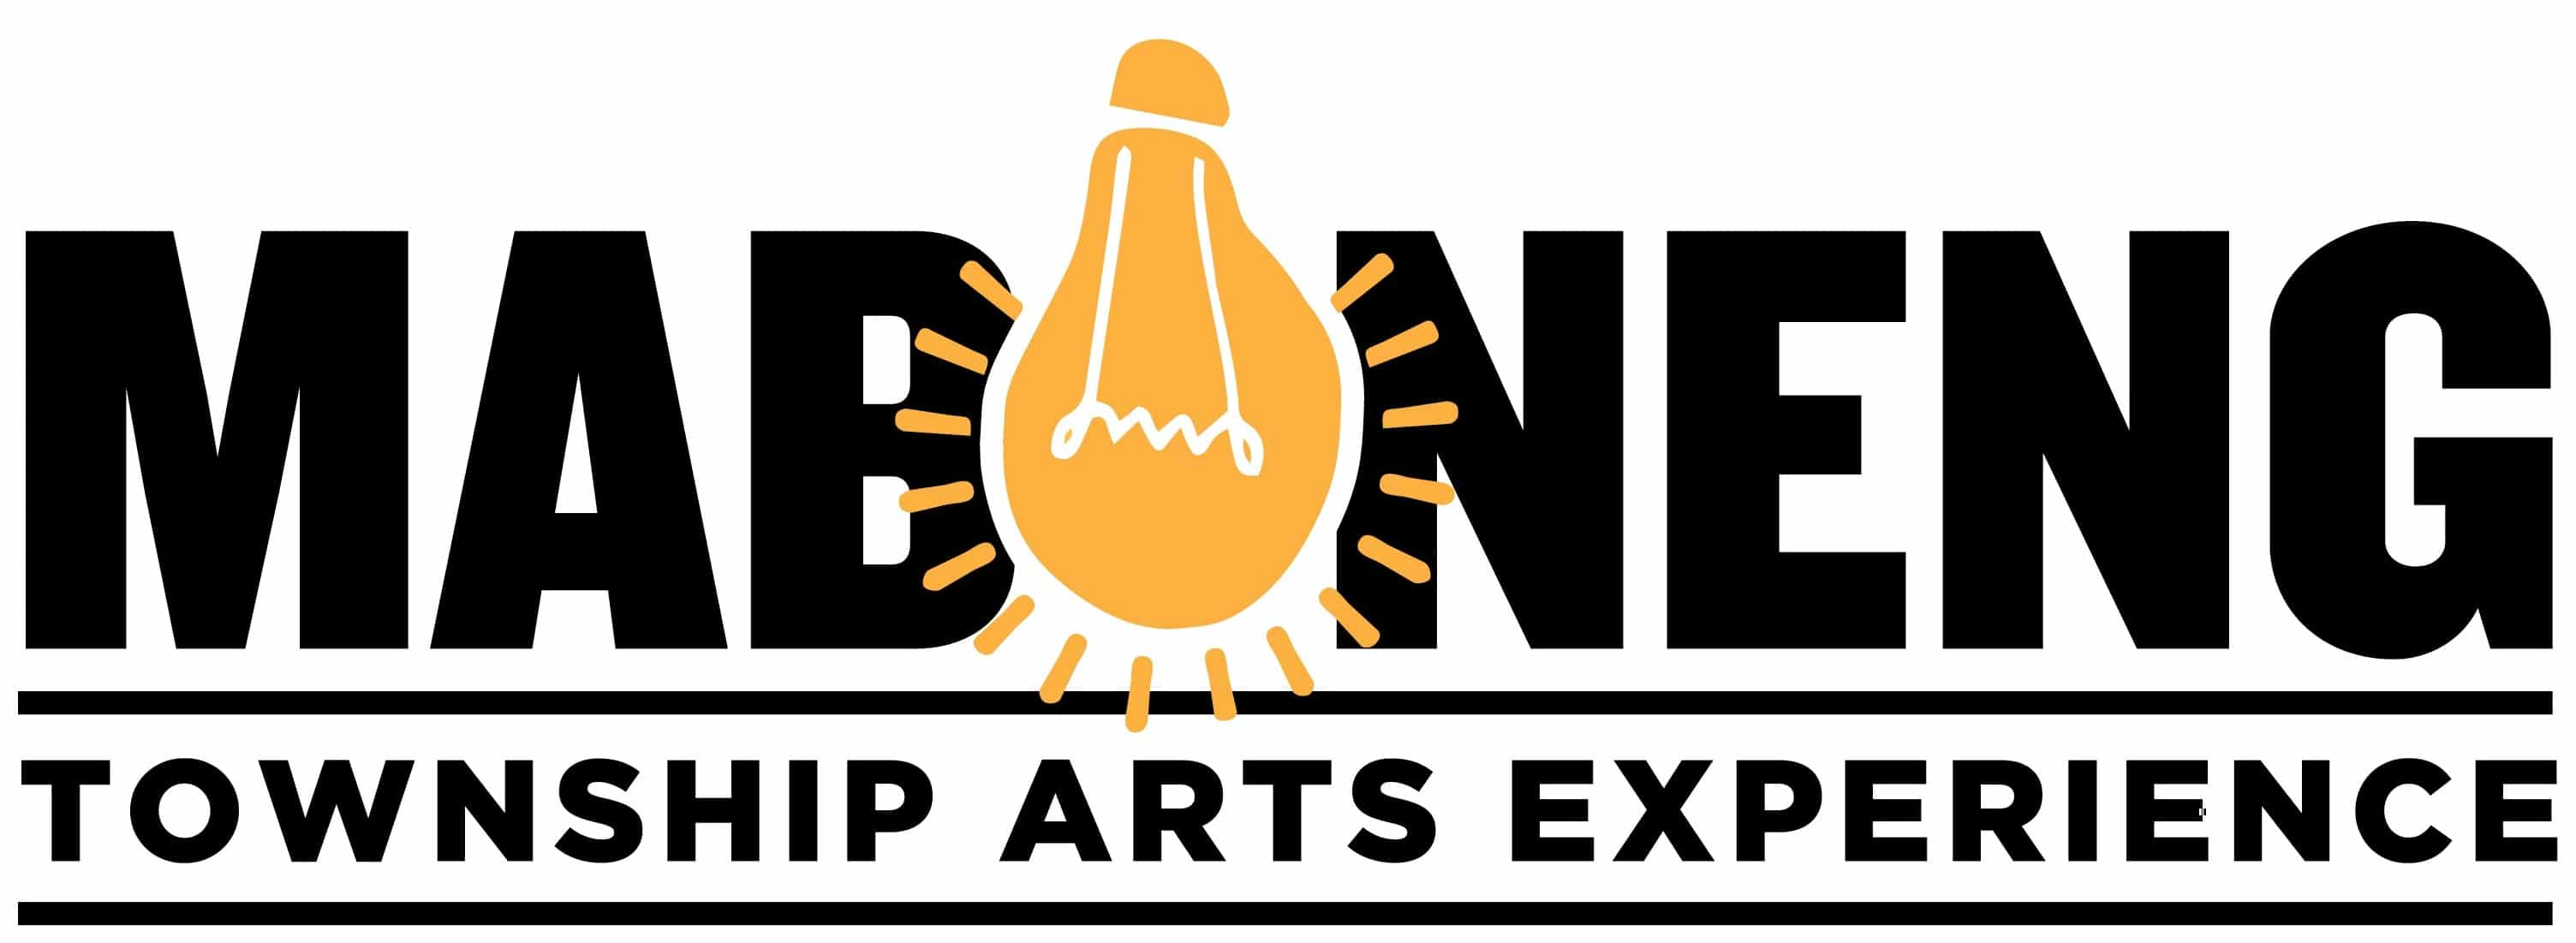 Maboneng Township Arts Experience Virtual Tours and Experiences